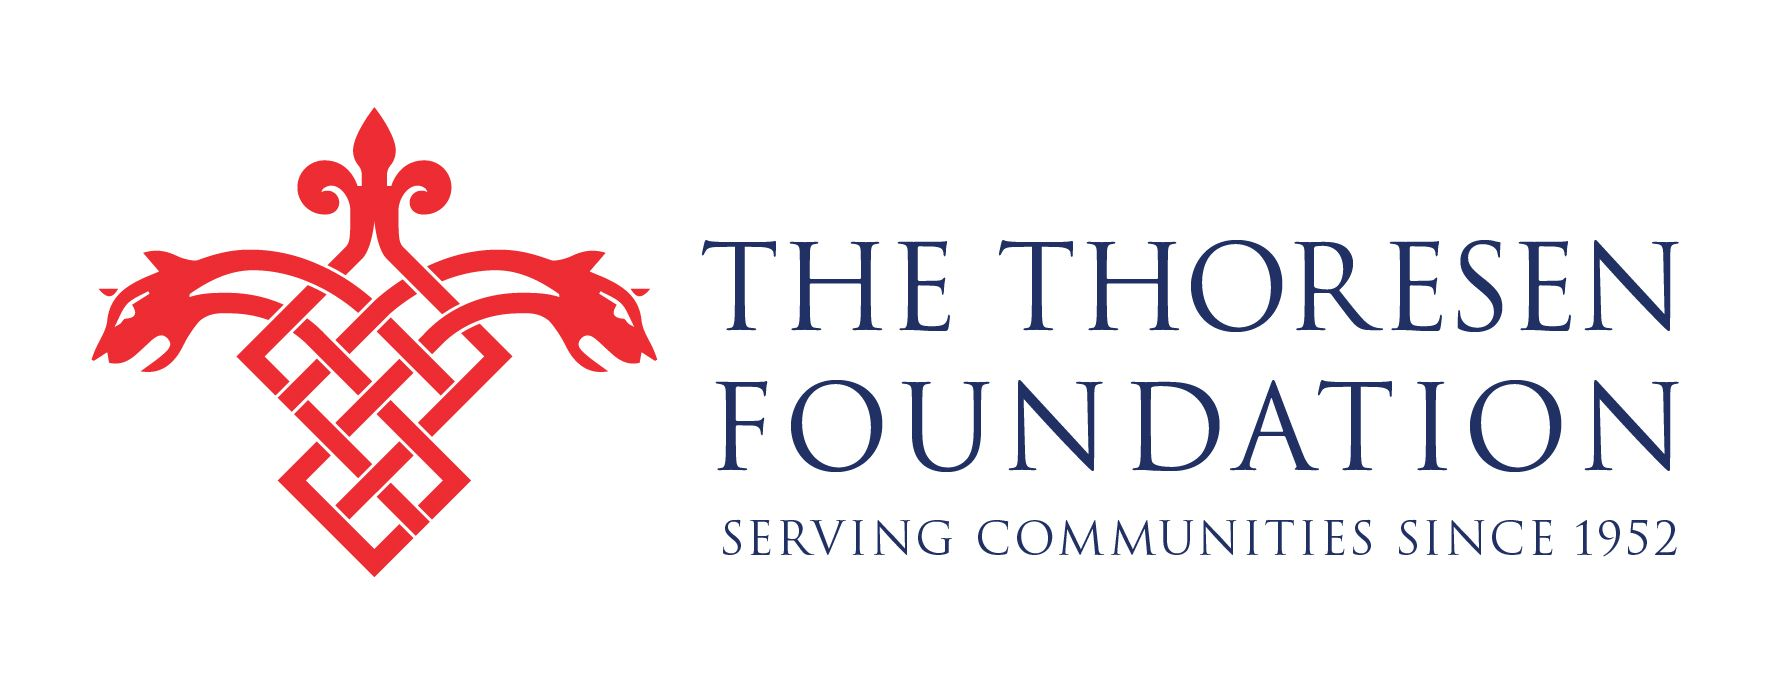 TheThoresenFoundation_horizontal-logo